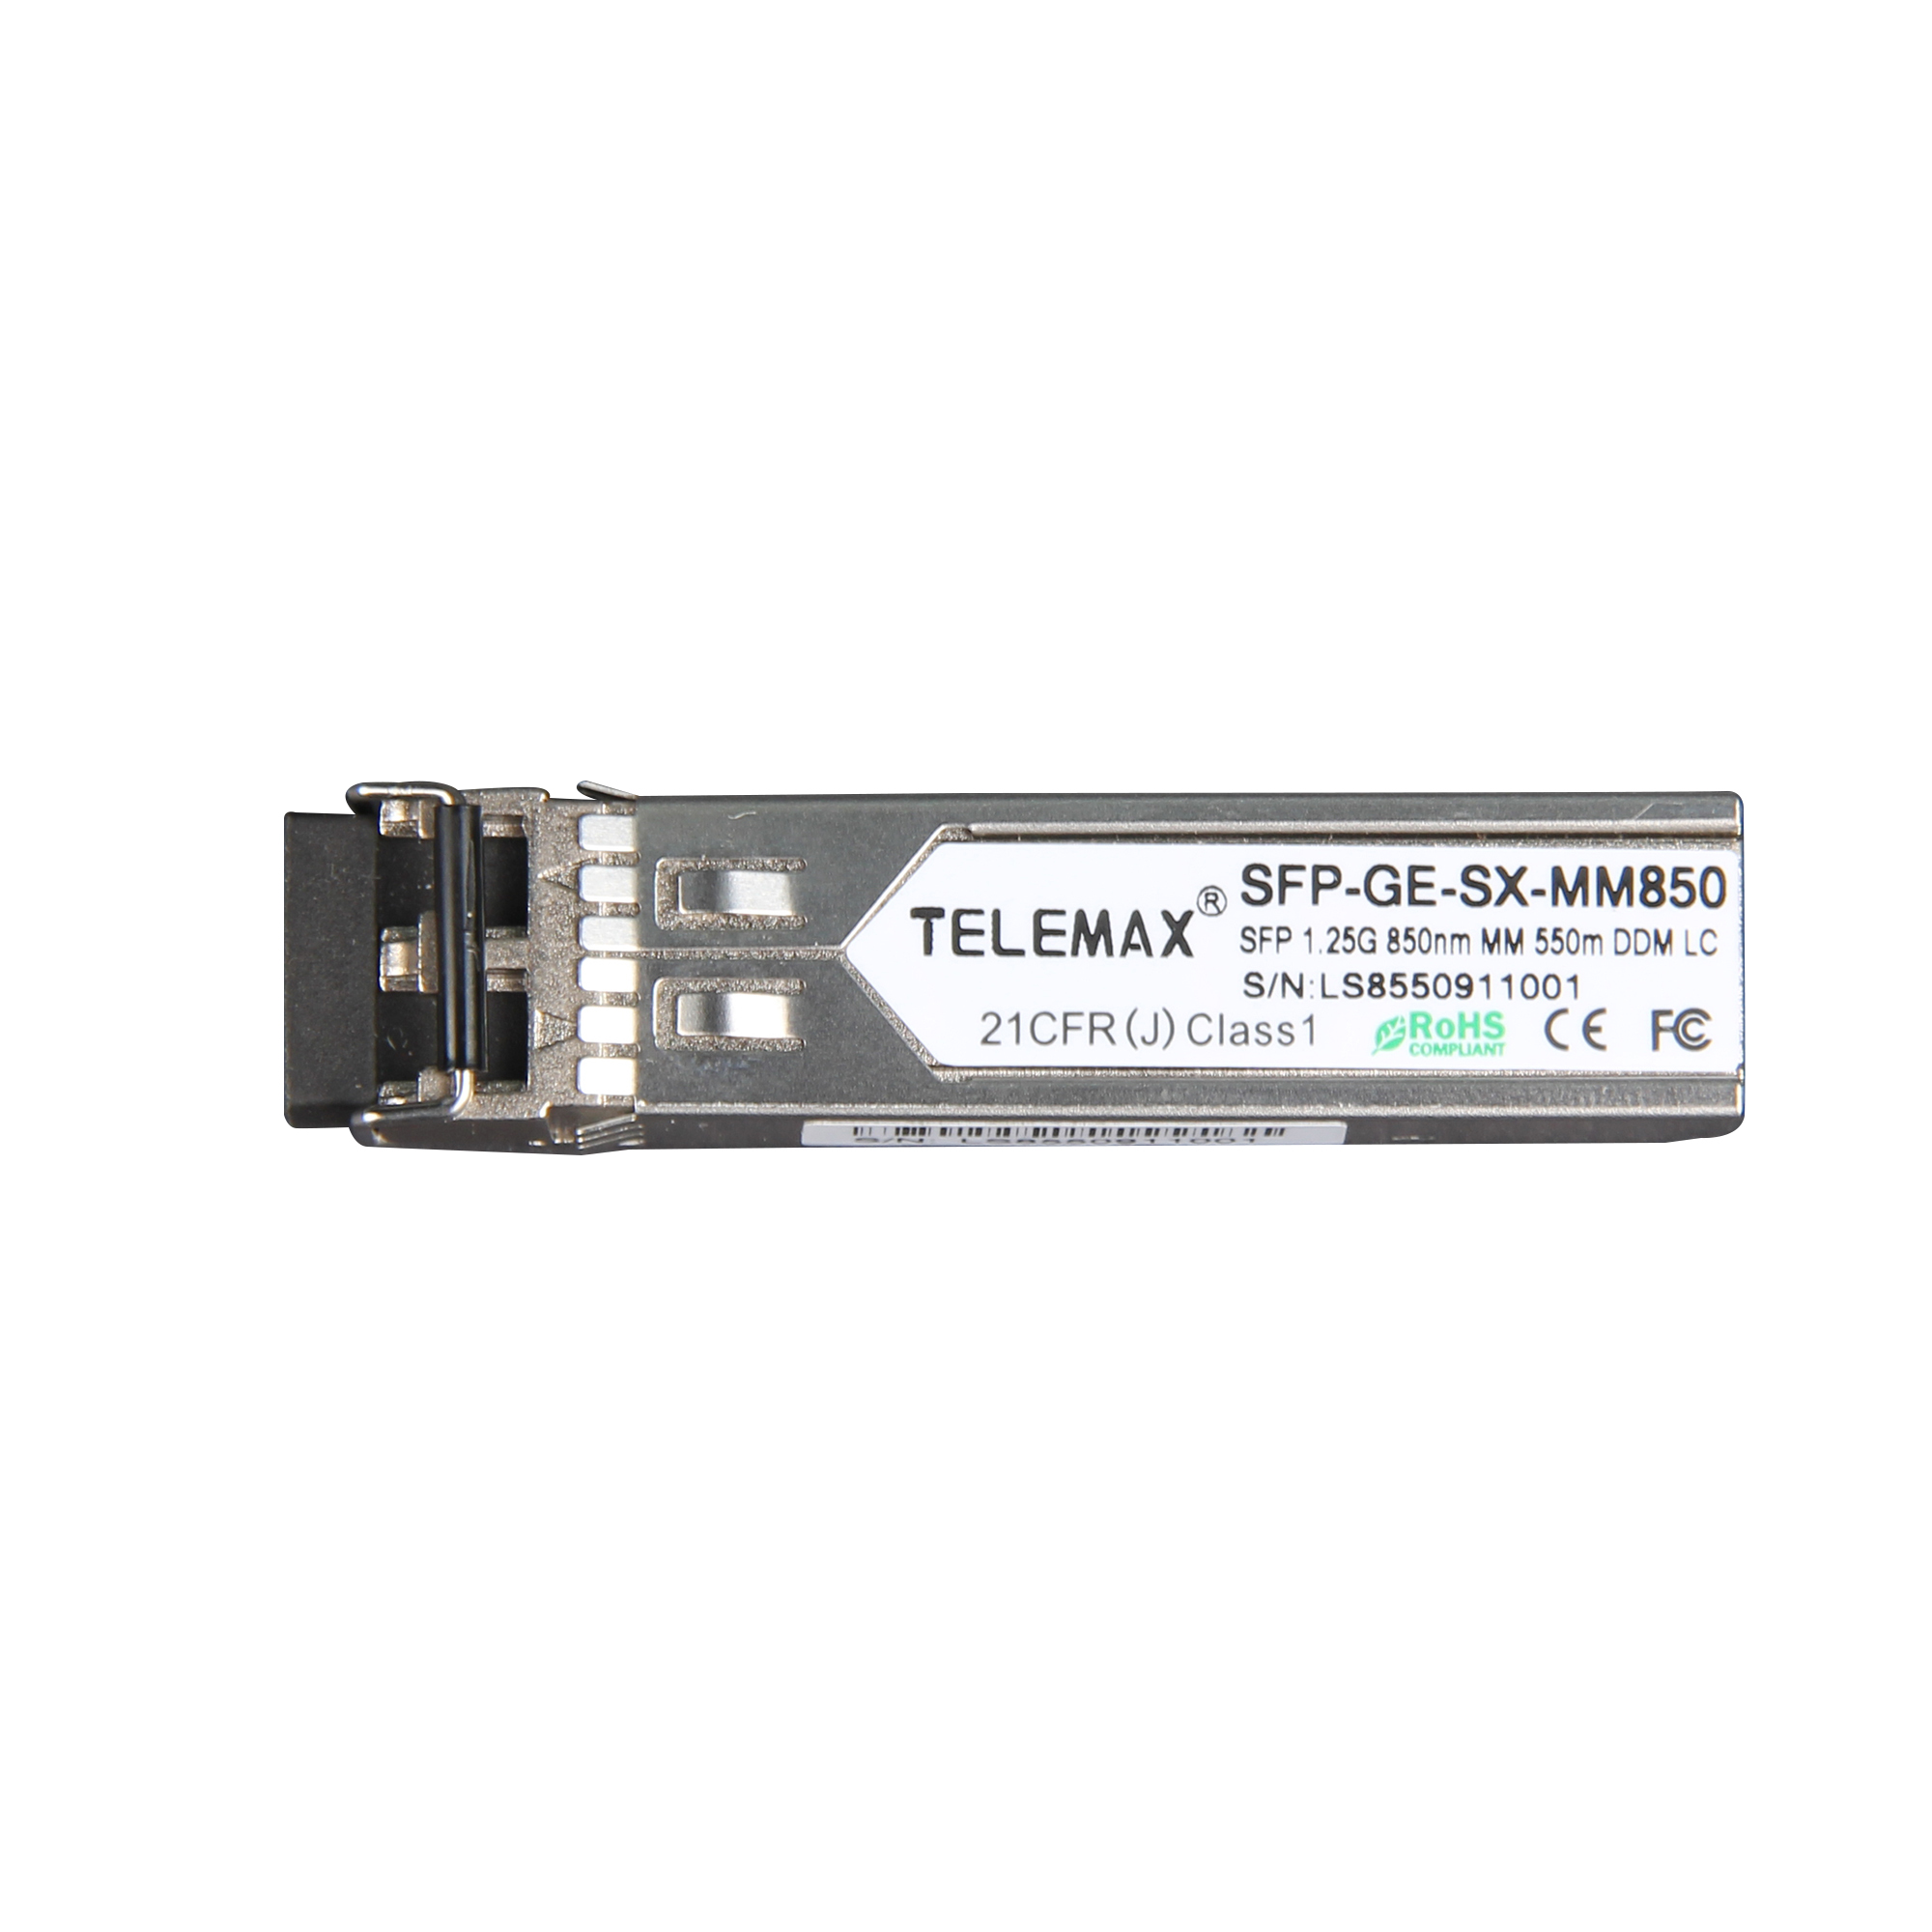 SFP 1.25G 850nm MM 550 DDM LC